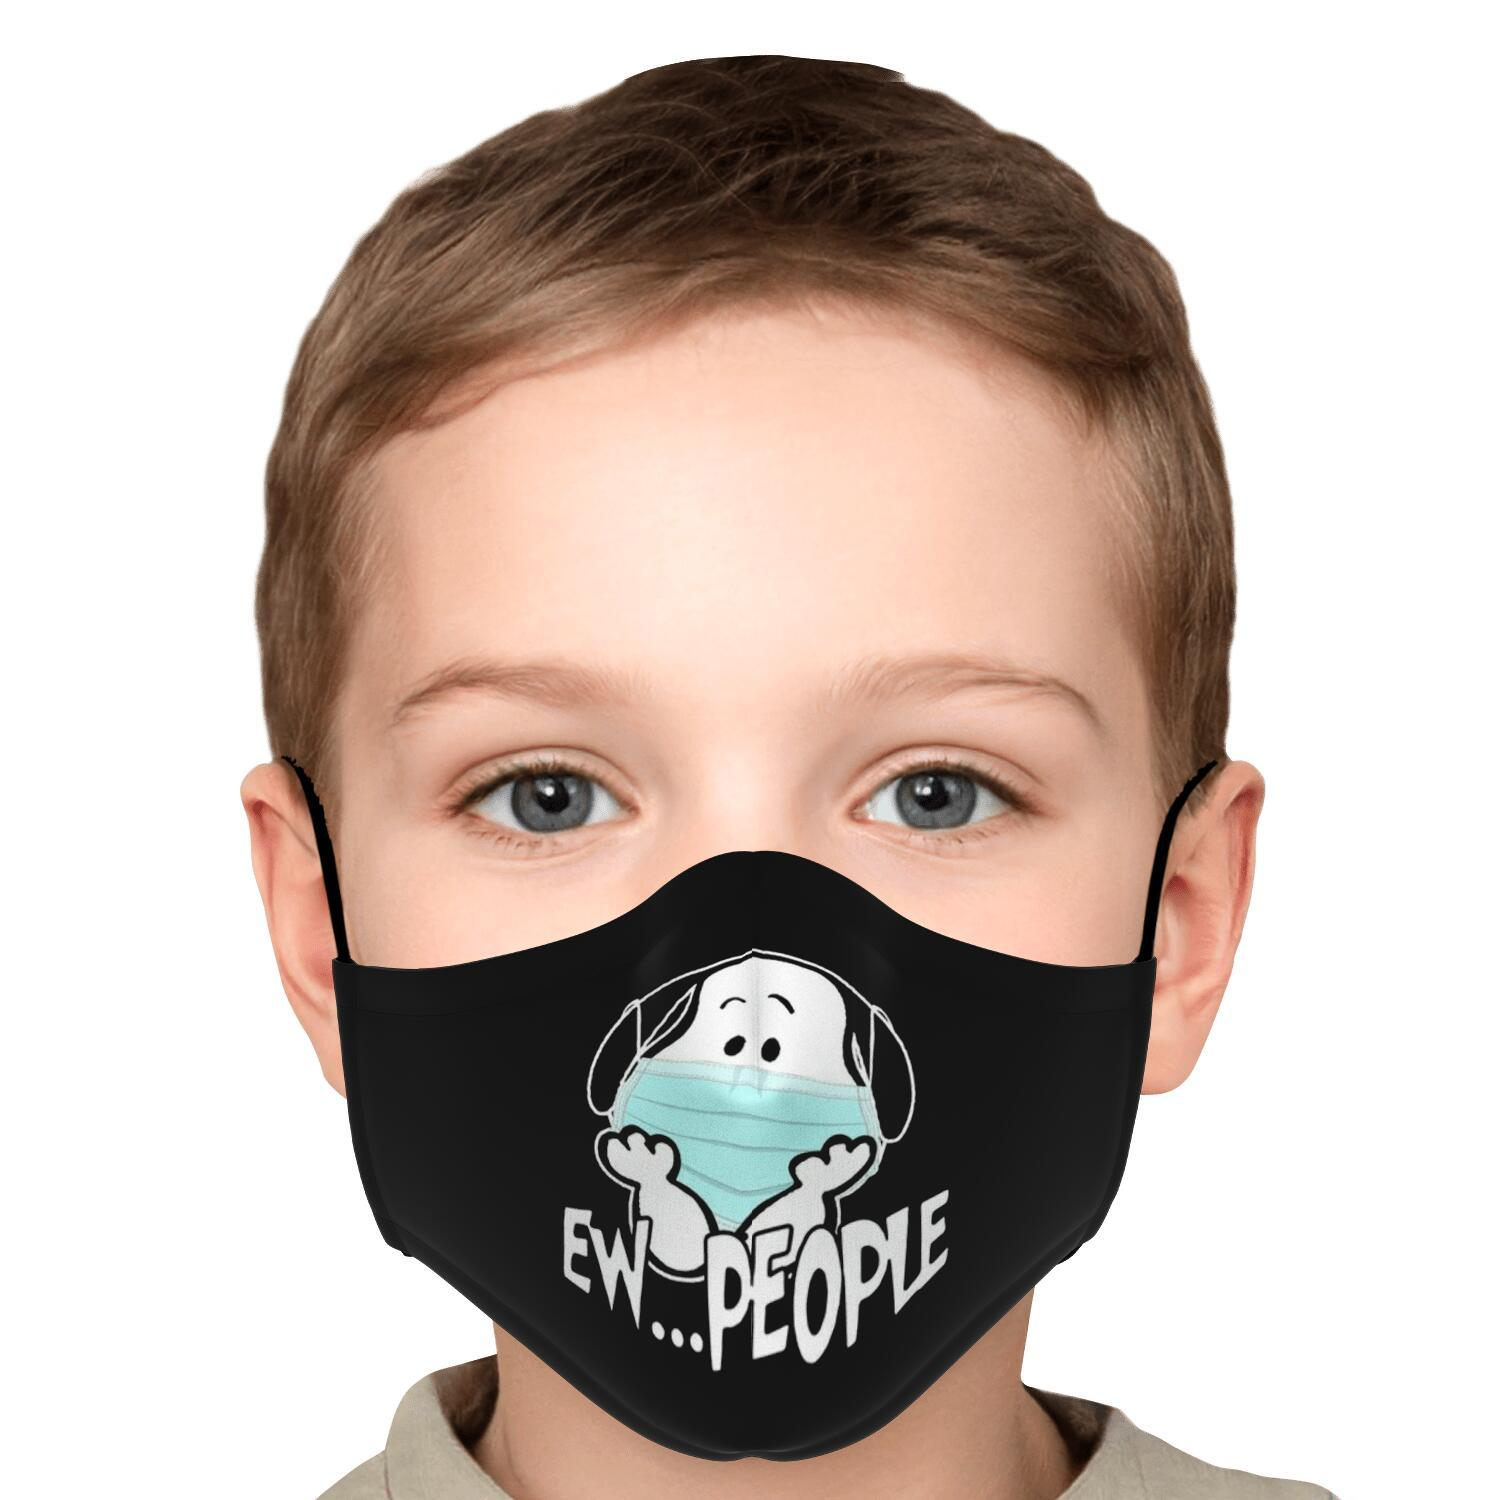 Ew People Snoopy Face Mask 5